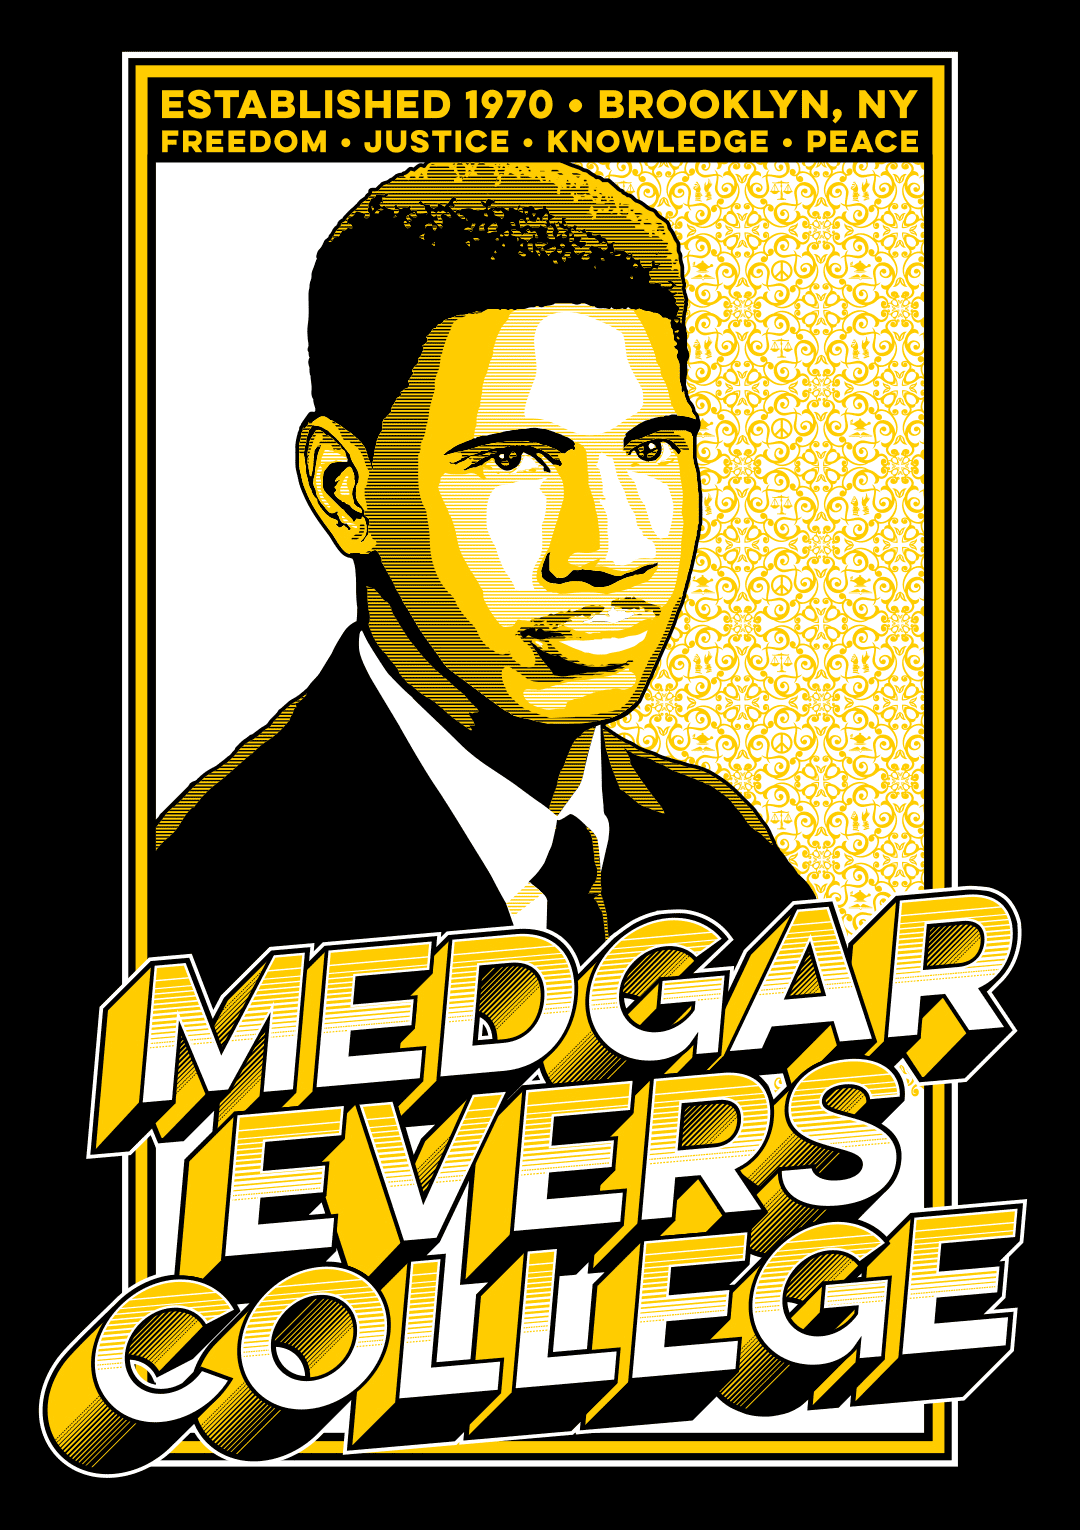 Medgar Evers College 50th Anniversary